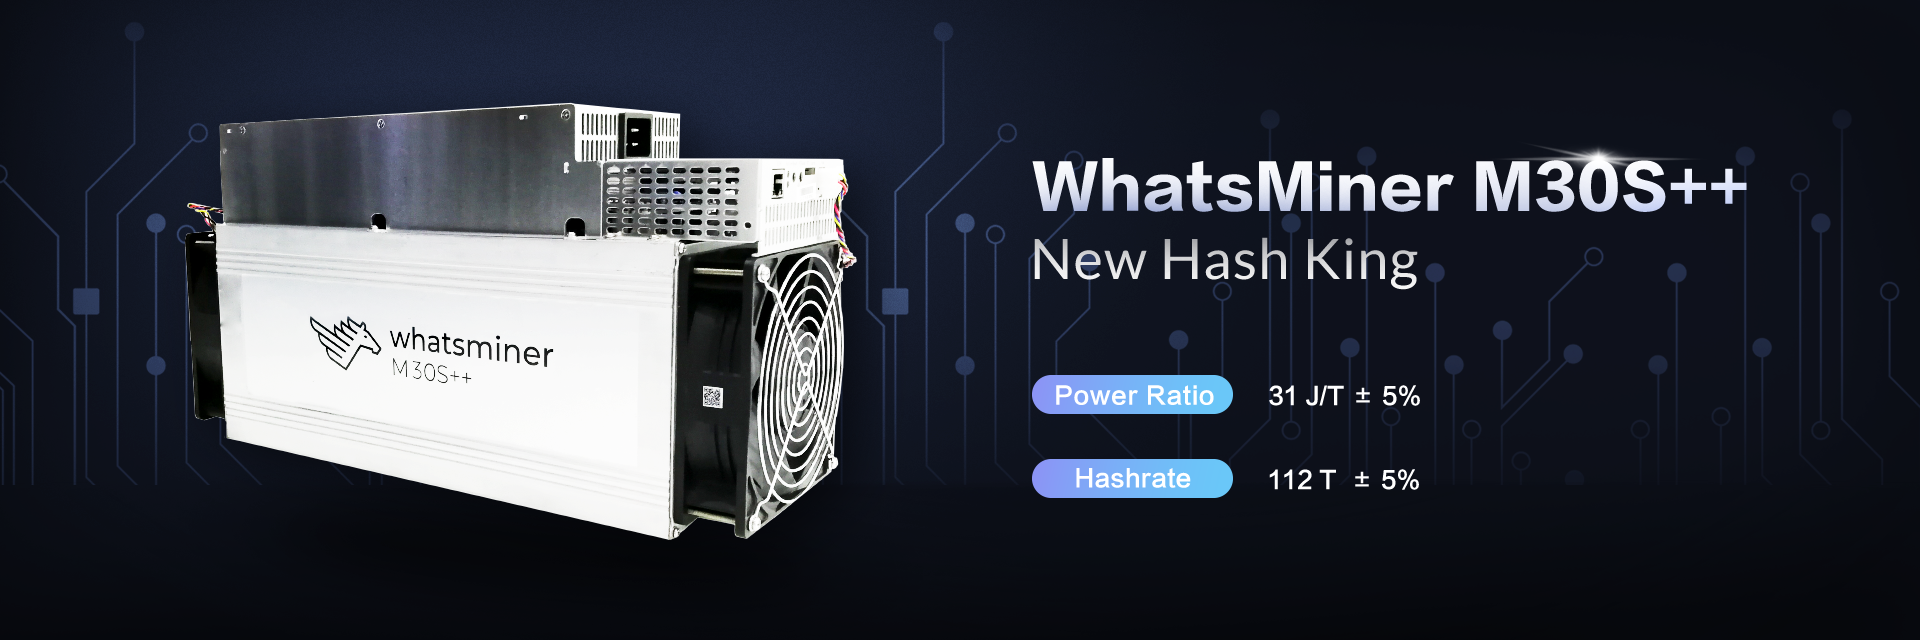 WhatsMiner M30s++ buy